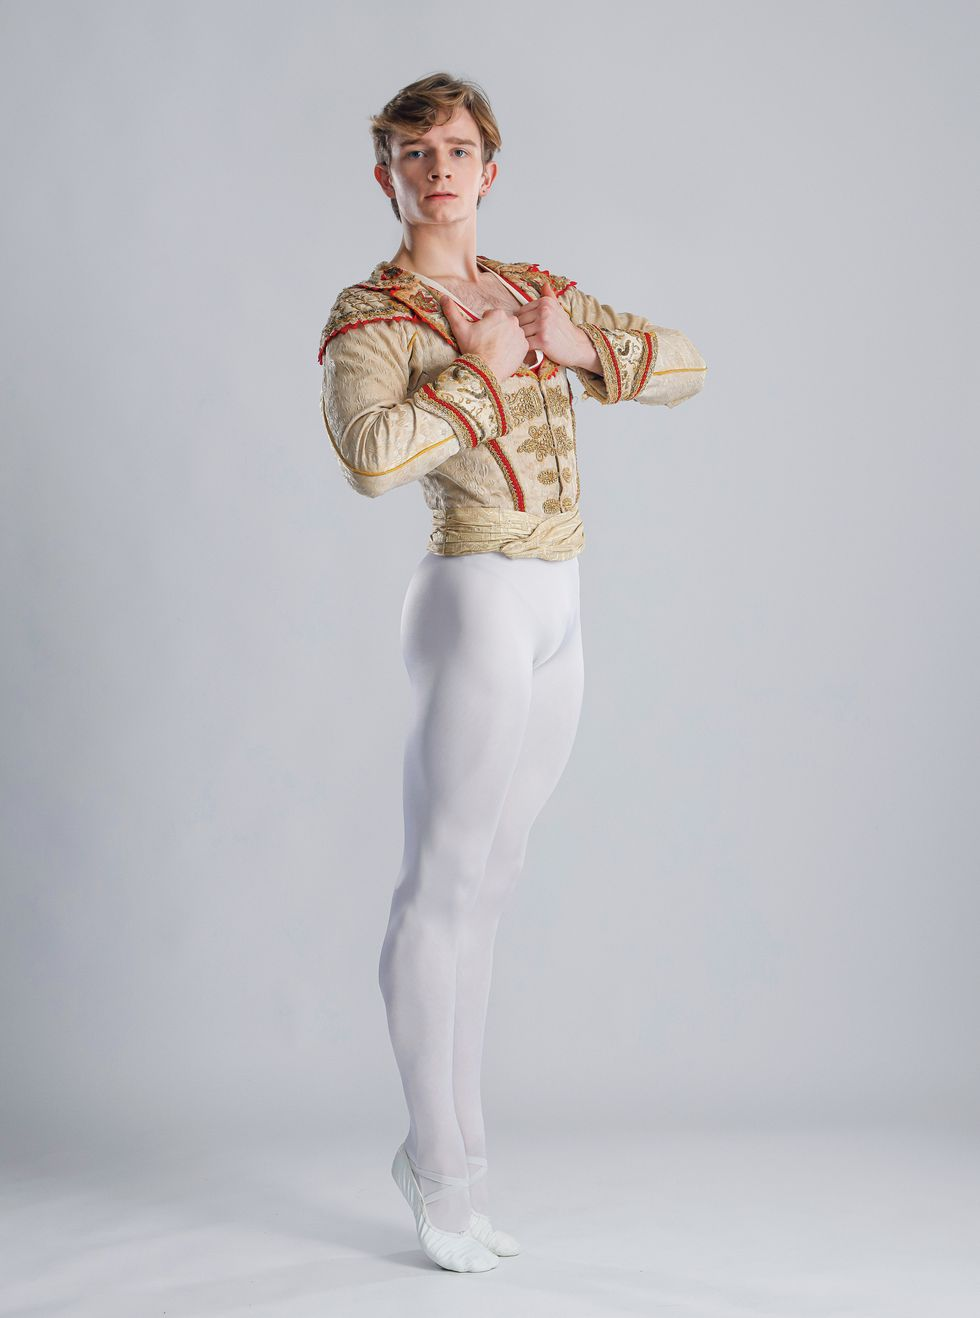 Aran Bell poses against a light grey background. He's wearing white tights and shoes and a gold and Don Quixote jacket.